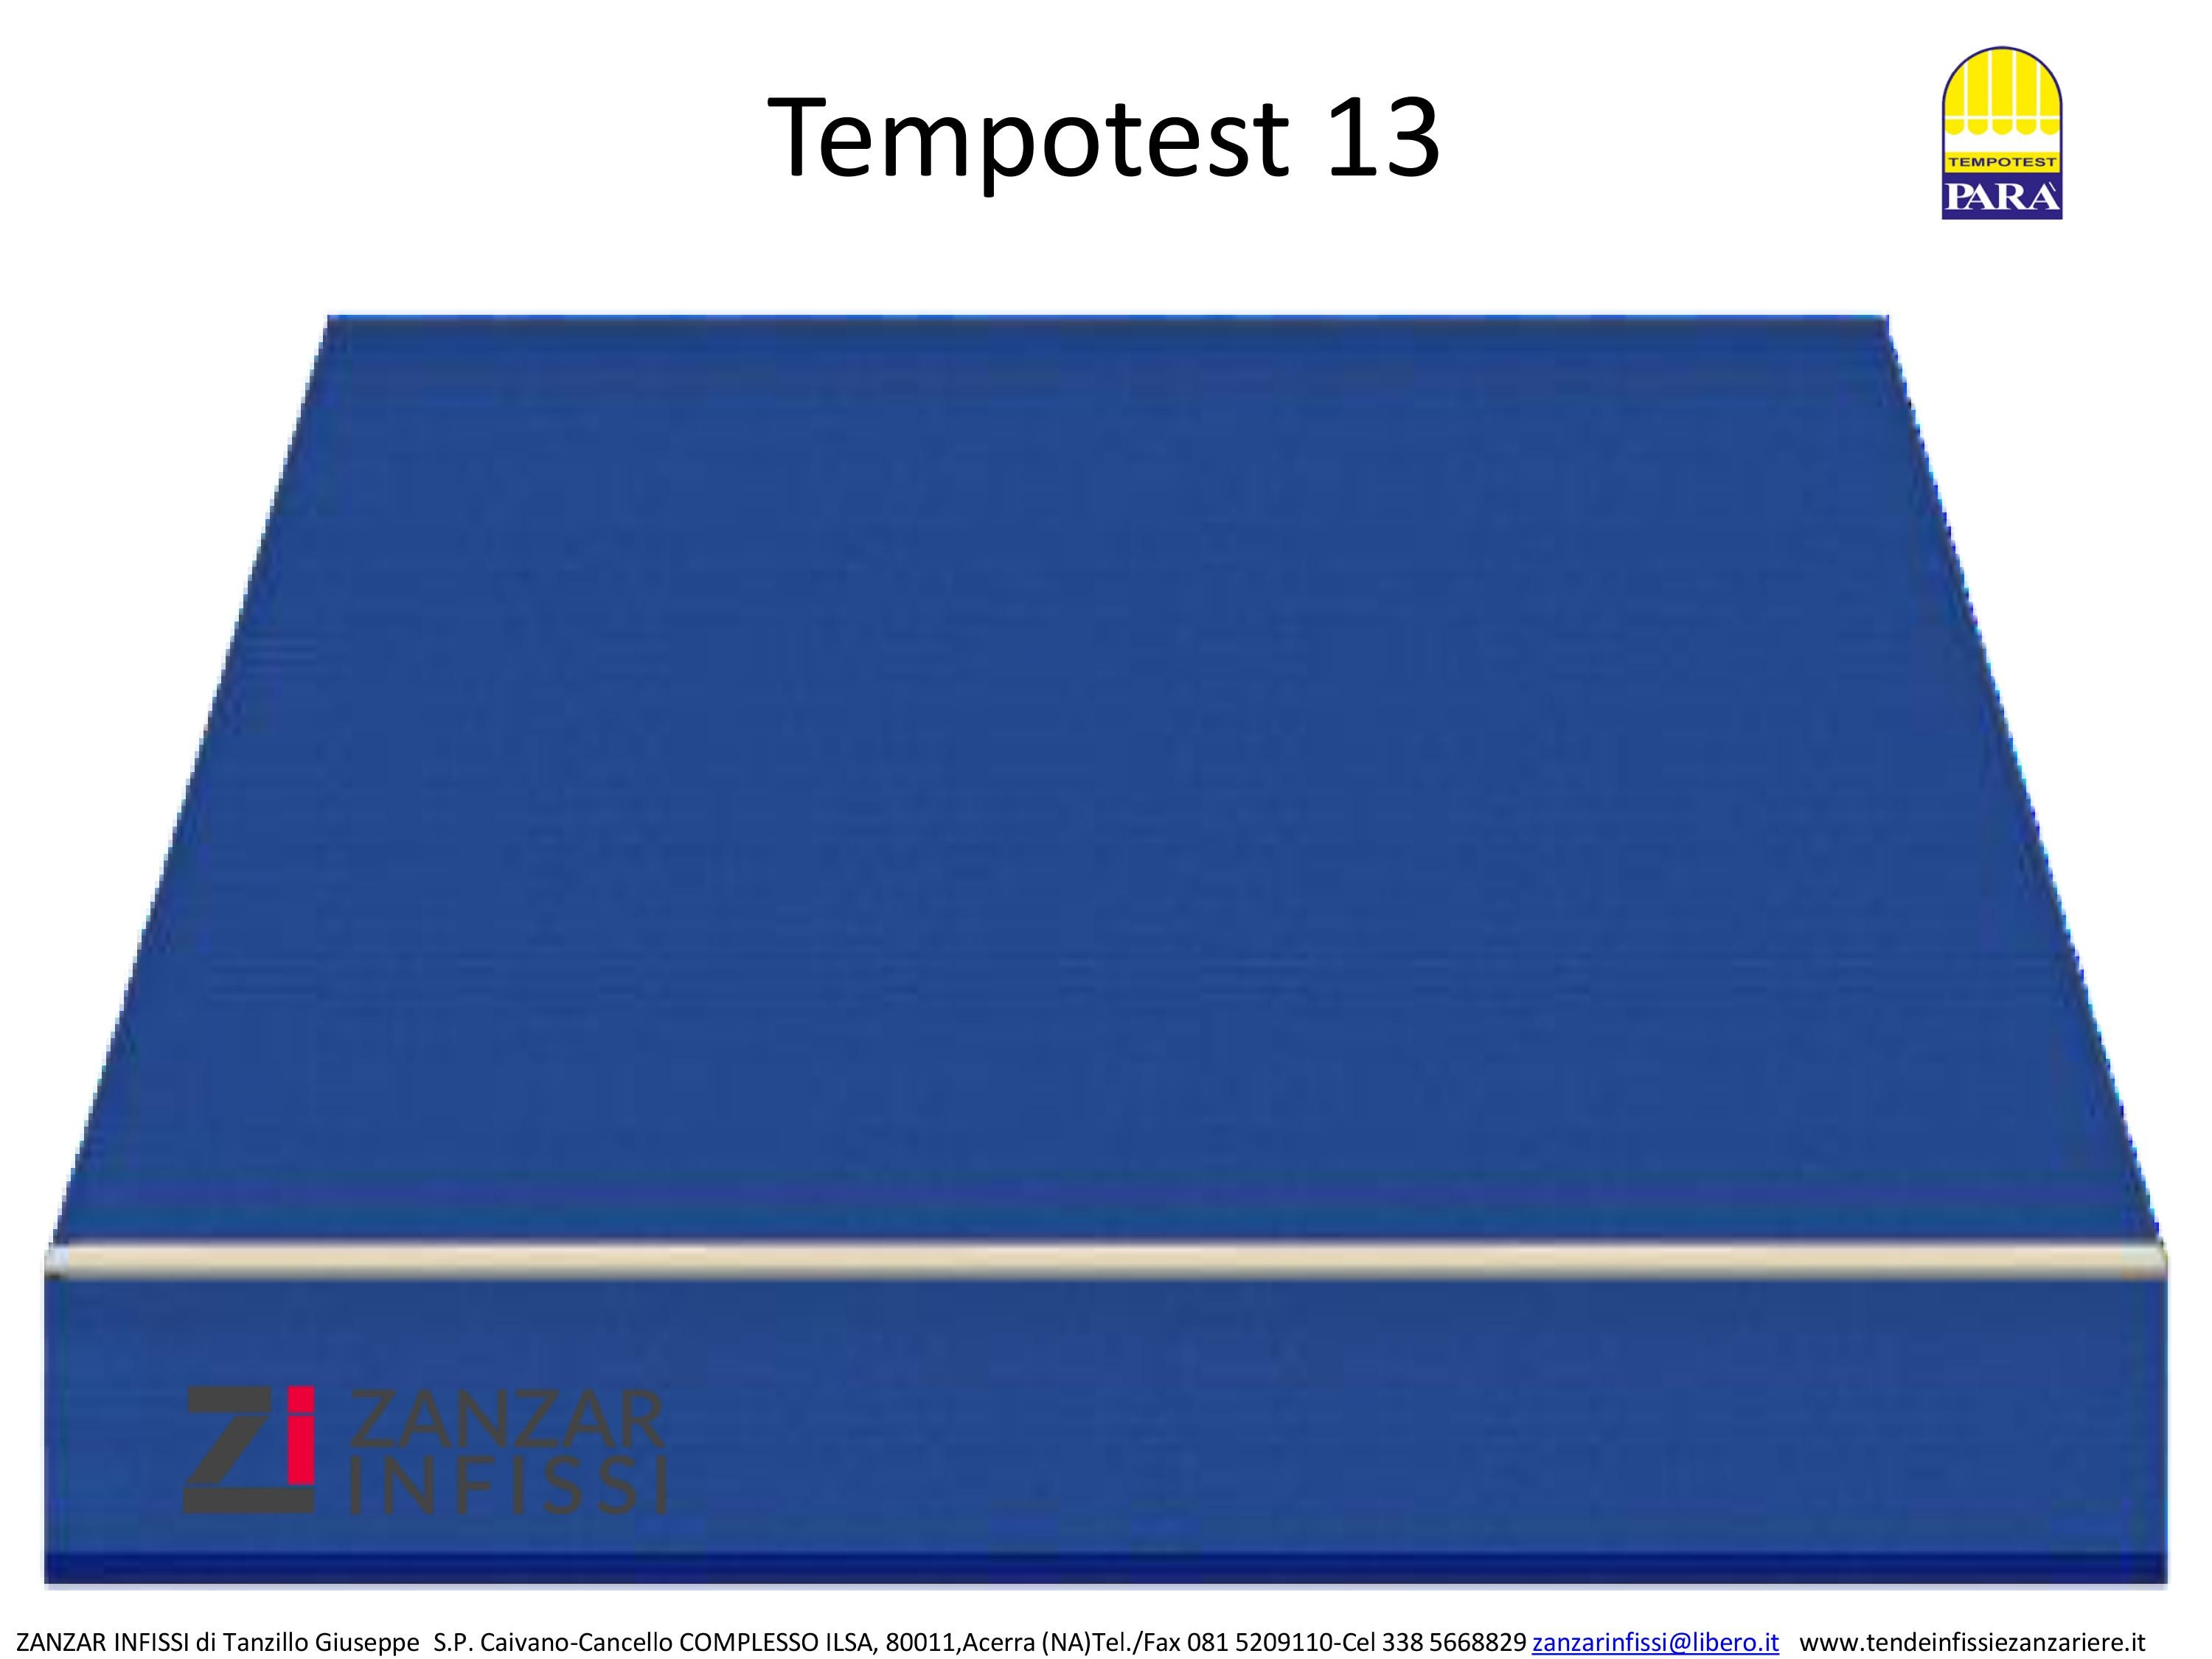 Tempotest 13